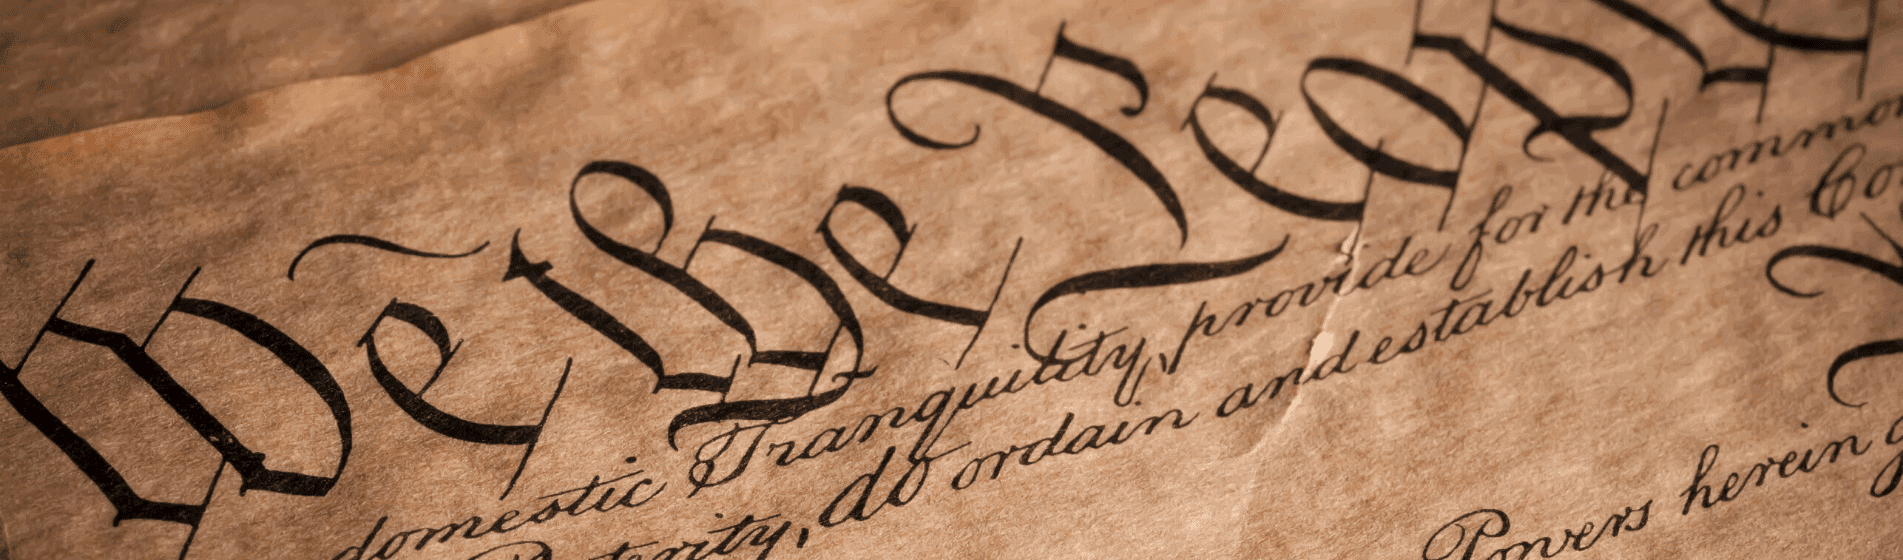 It's time for a new Declaration of Independence | Nomad ...